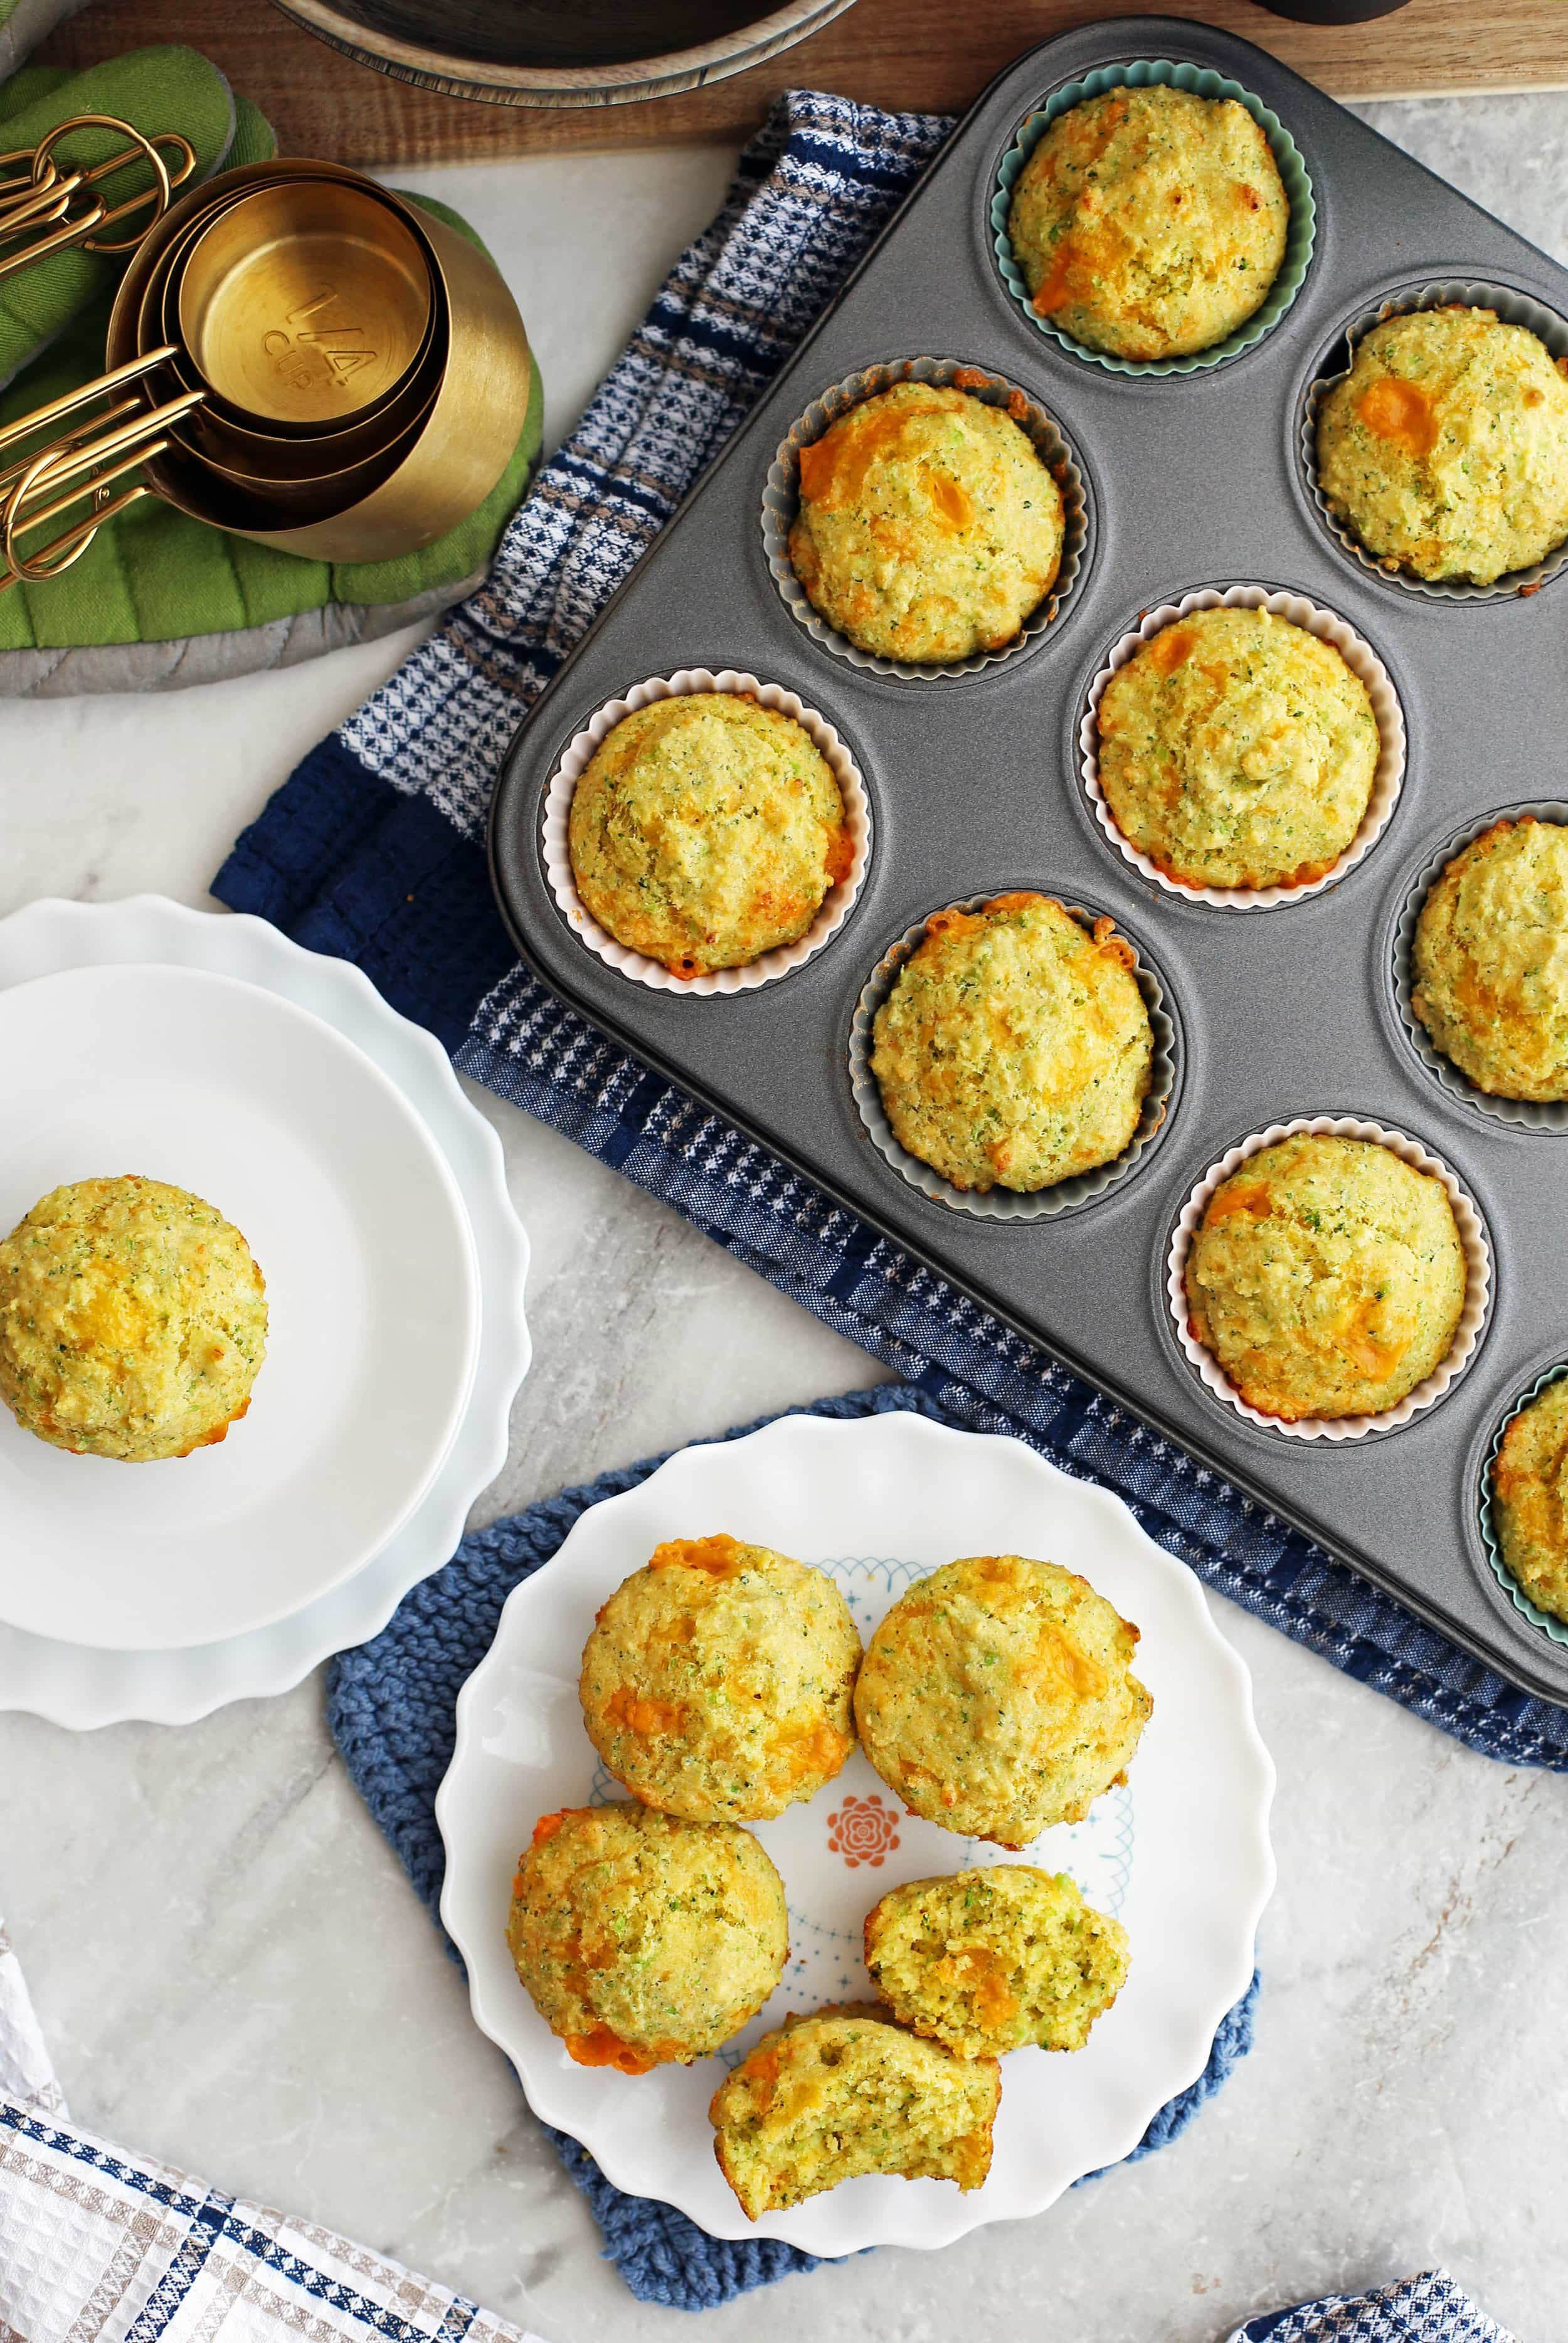 Overhead view of Broccoli Cheddar Cornbread Muffins on two white plates and a muffin pan.